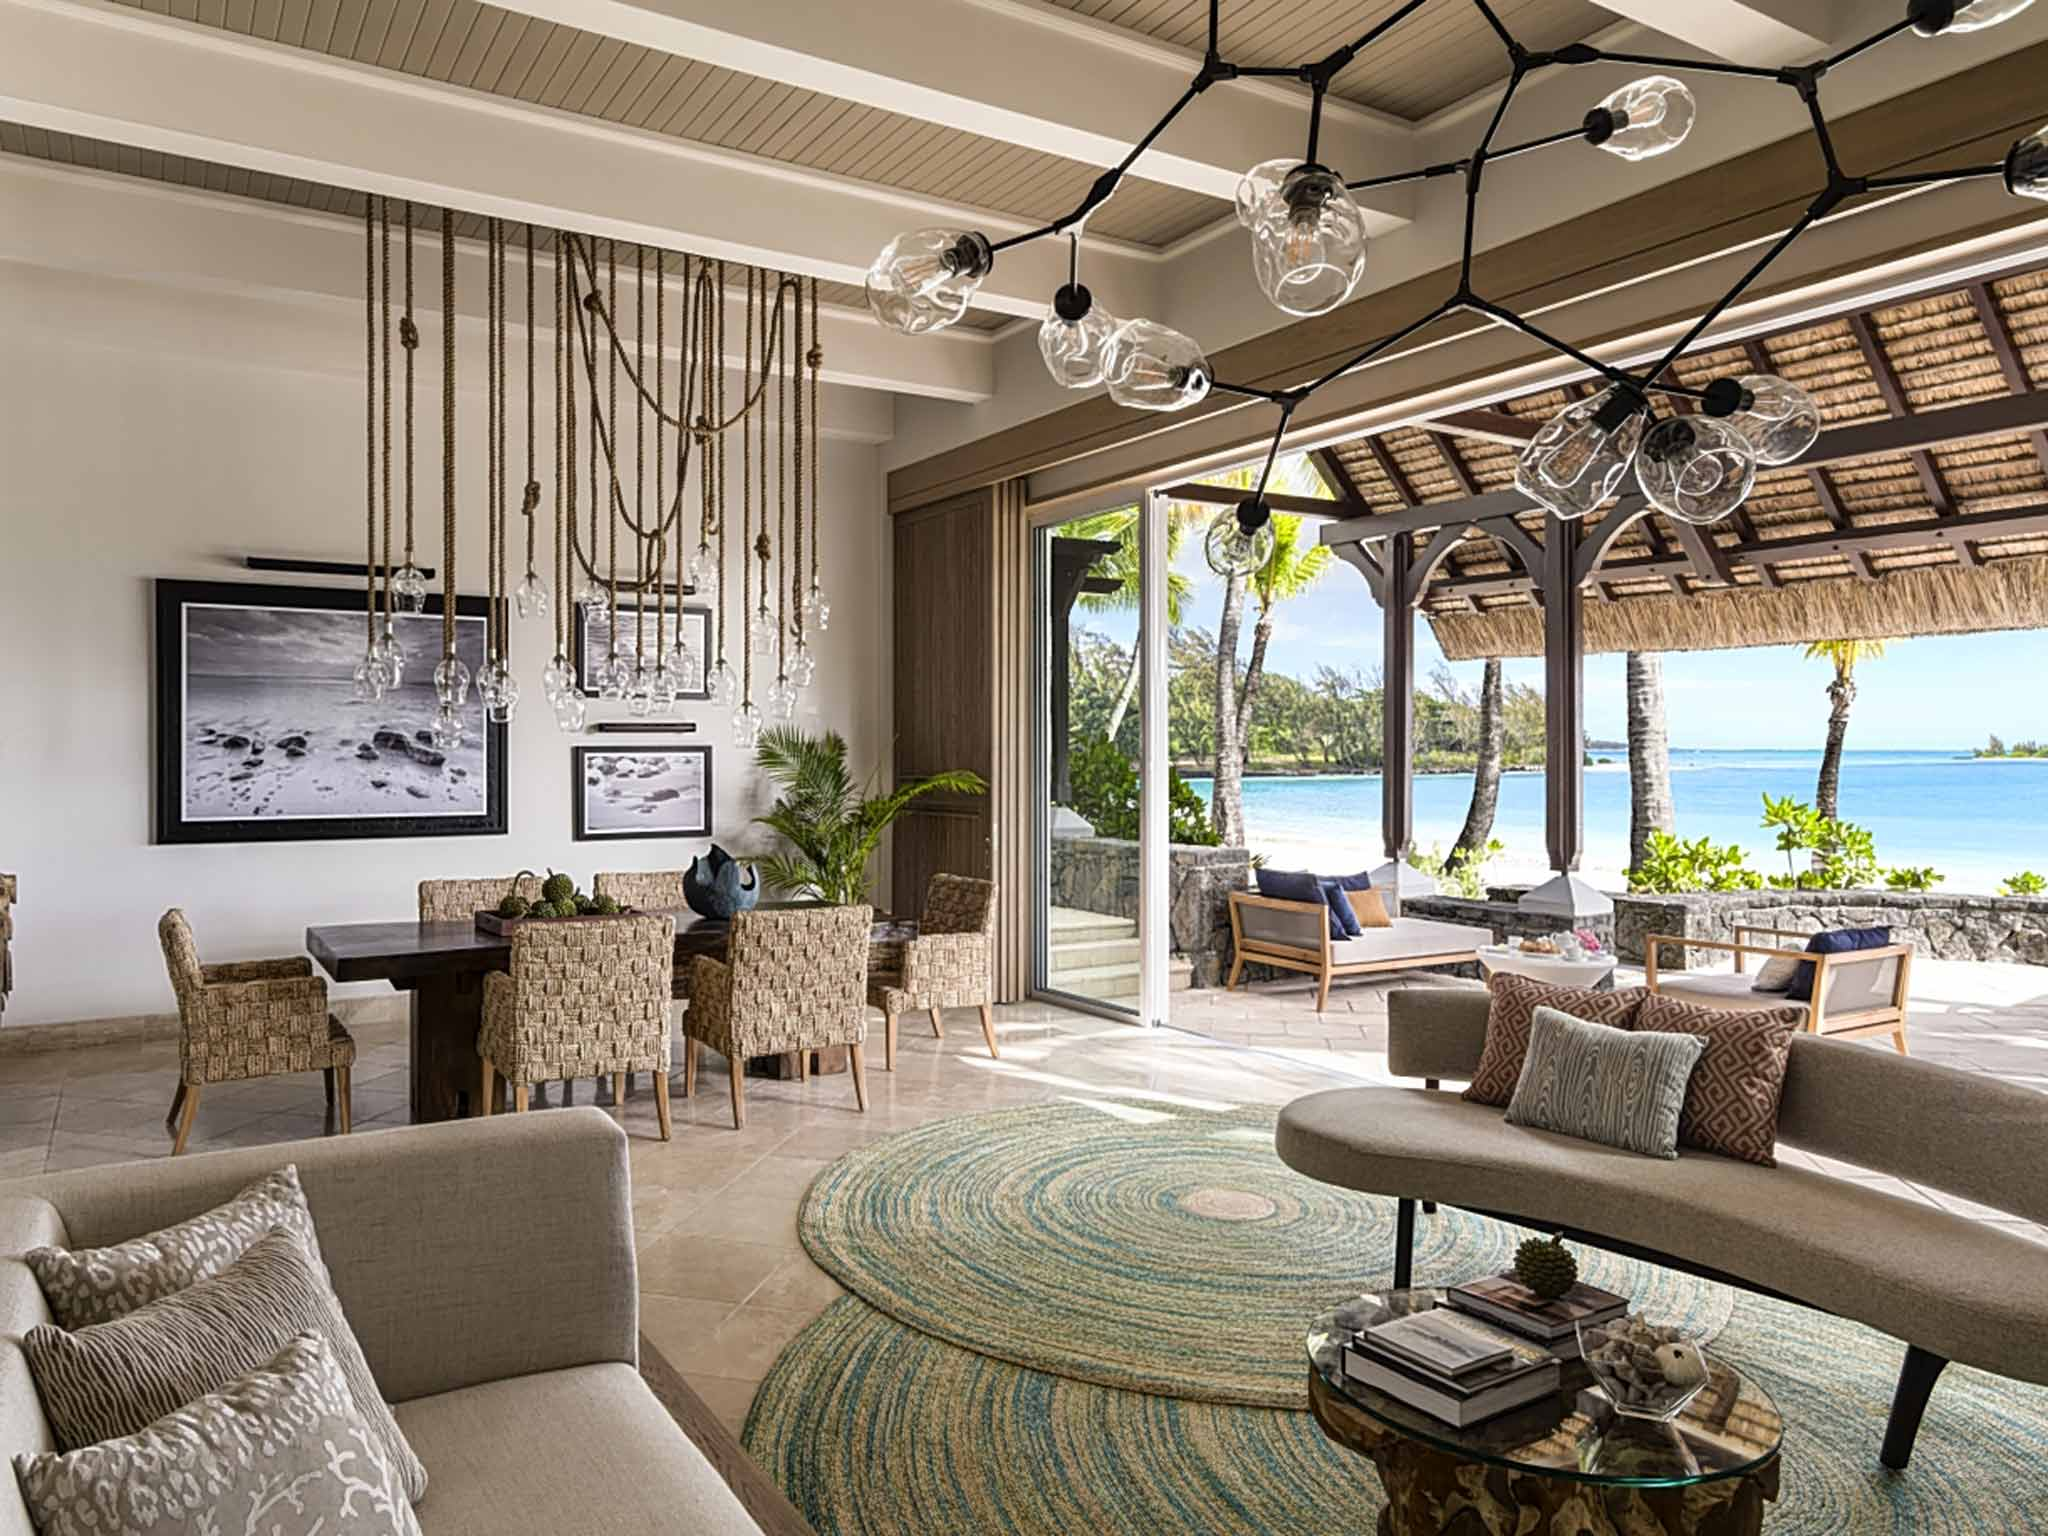 Winter sun retreats from mauritius to mozambique the for Design hotel mauritius